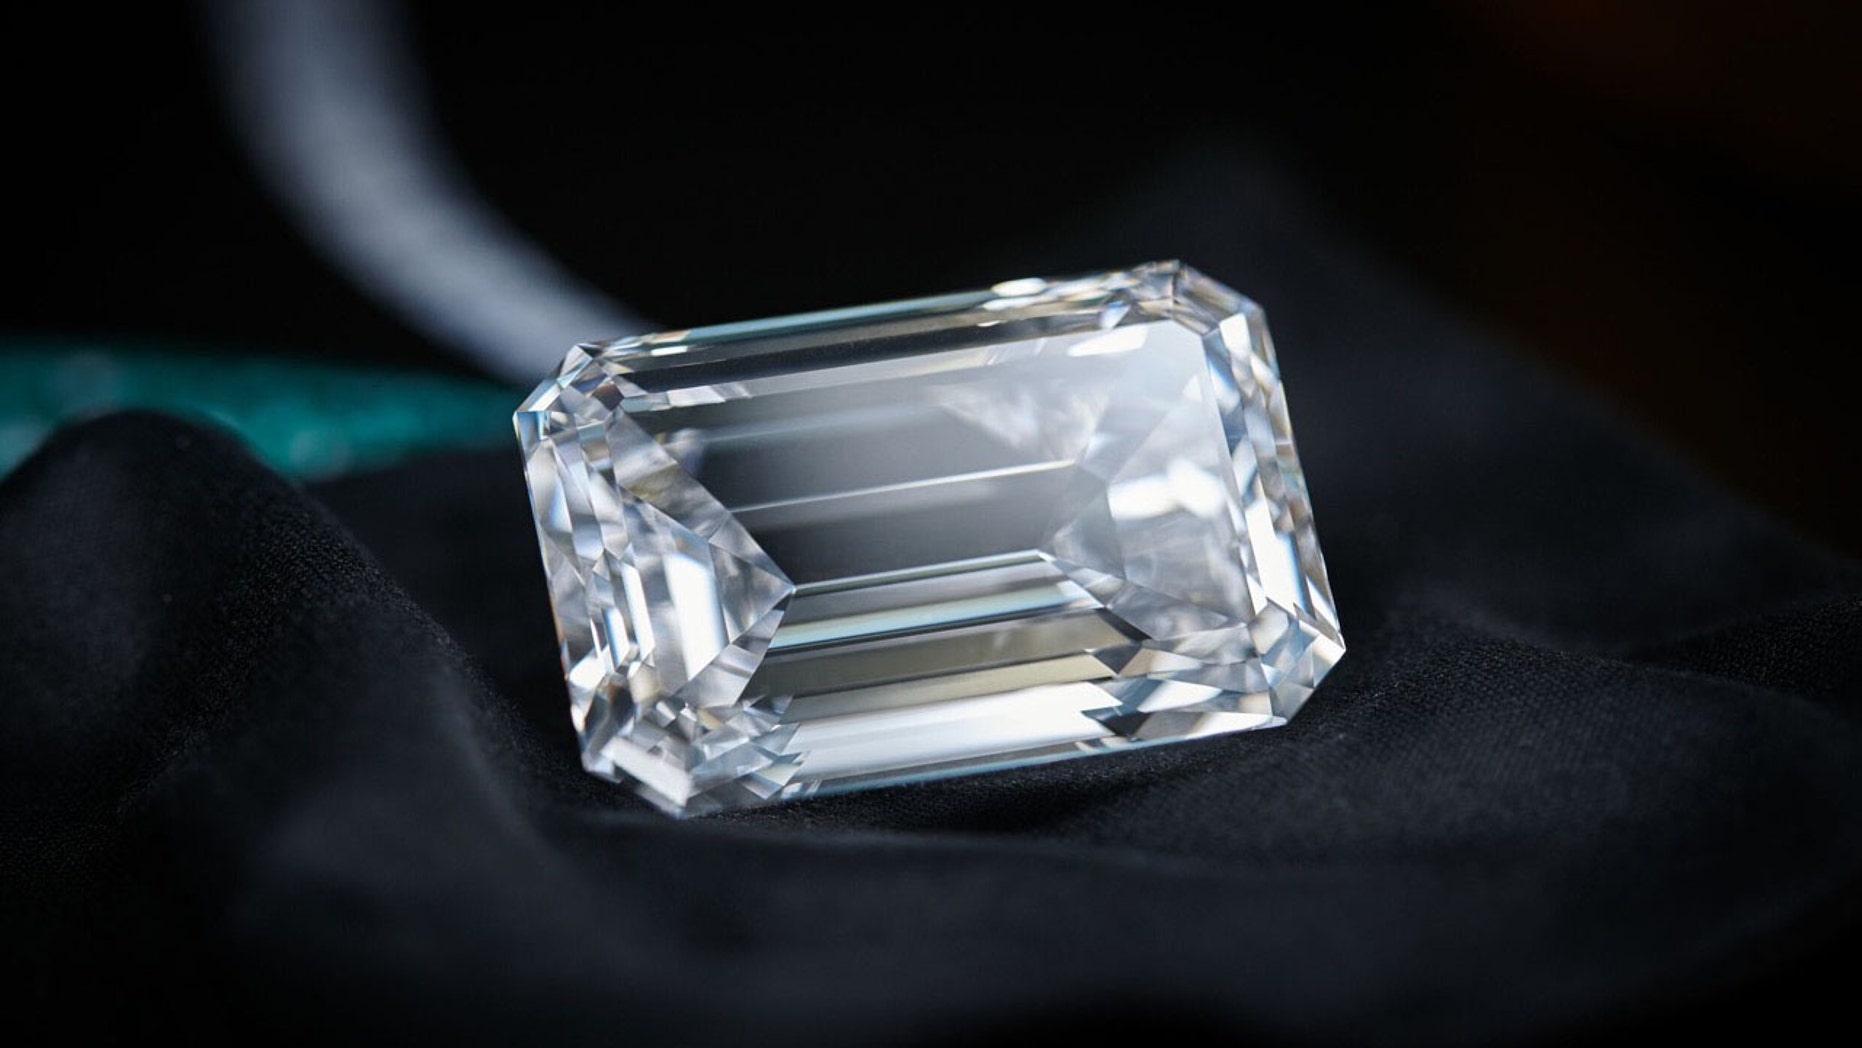 In this image released on Thursday, Sept. 28, 2017, a 163-carat flawless emerald stone, the largest of its kind ever to be put up for auction, has been unveiled in Hong Kong today. The finished piece, named The Art of de Grisogono will be presented in a series of public viewings around the world before it goes up for an auction at Christie's in Geneva on November 14.